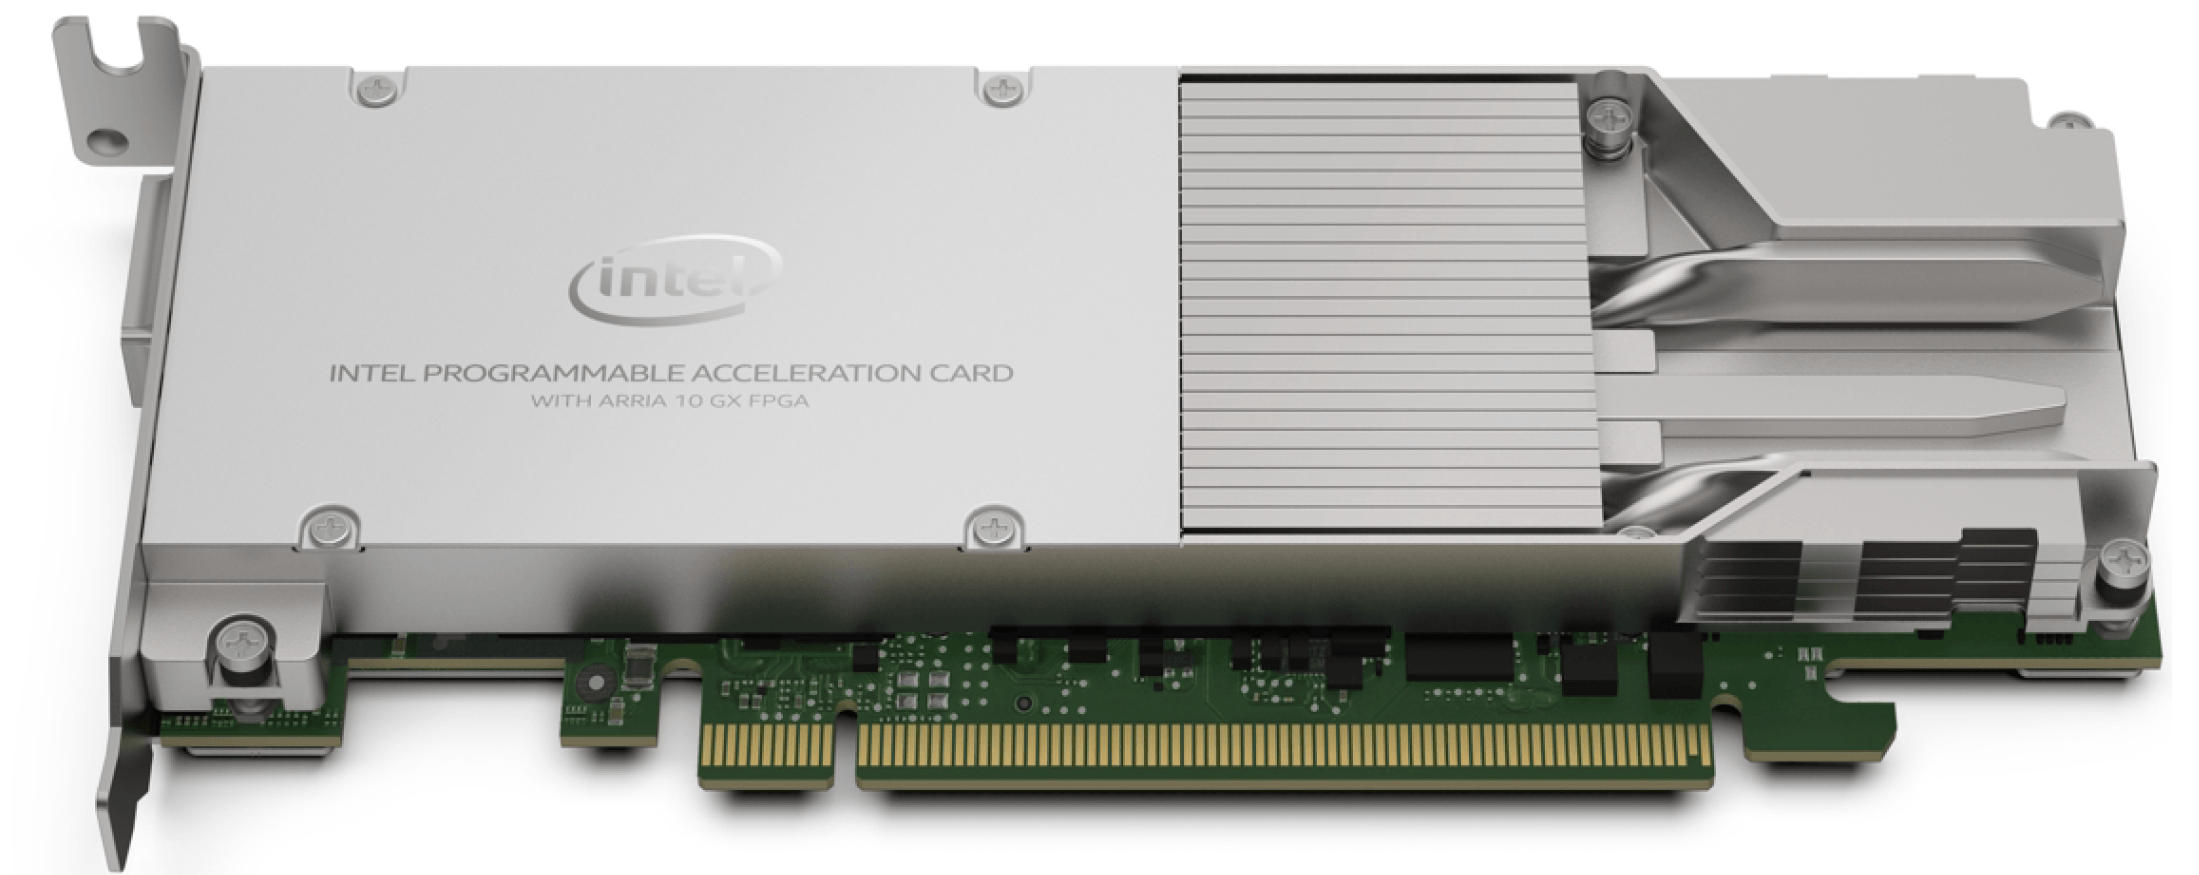 https://simplecore-ger.intel.com/techdecoded/wp-content/uploads/sites/11/art1-fpga-arria-acceleration-card-1024x407.png